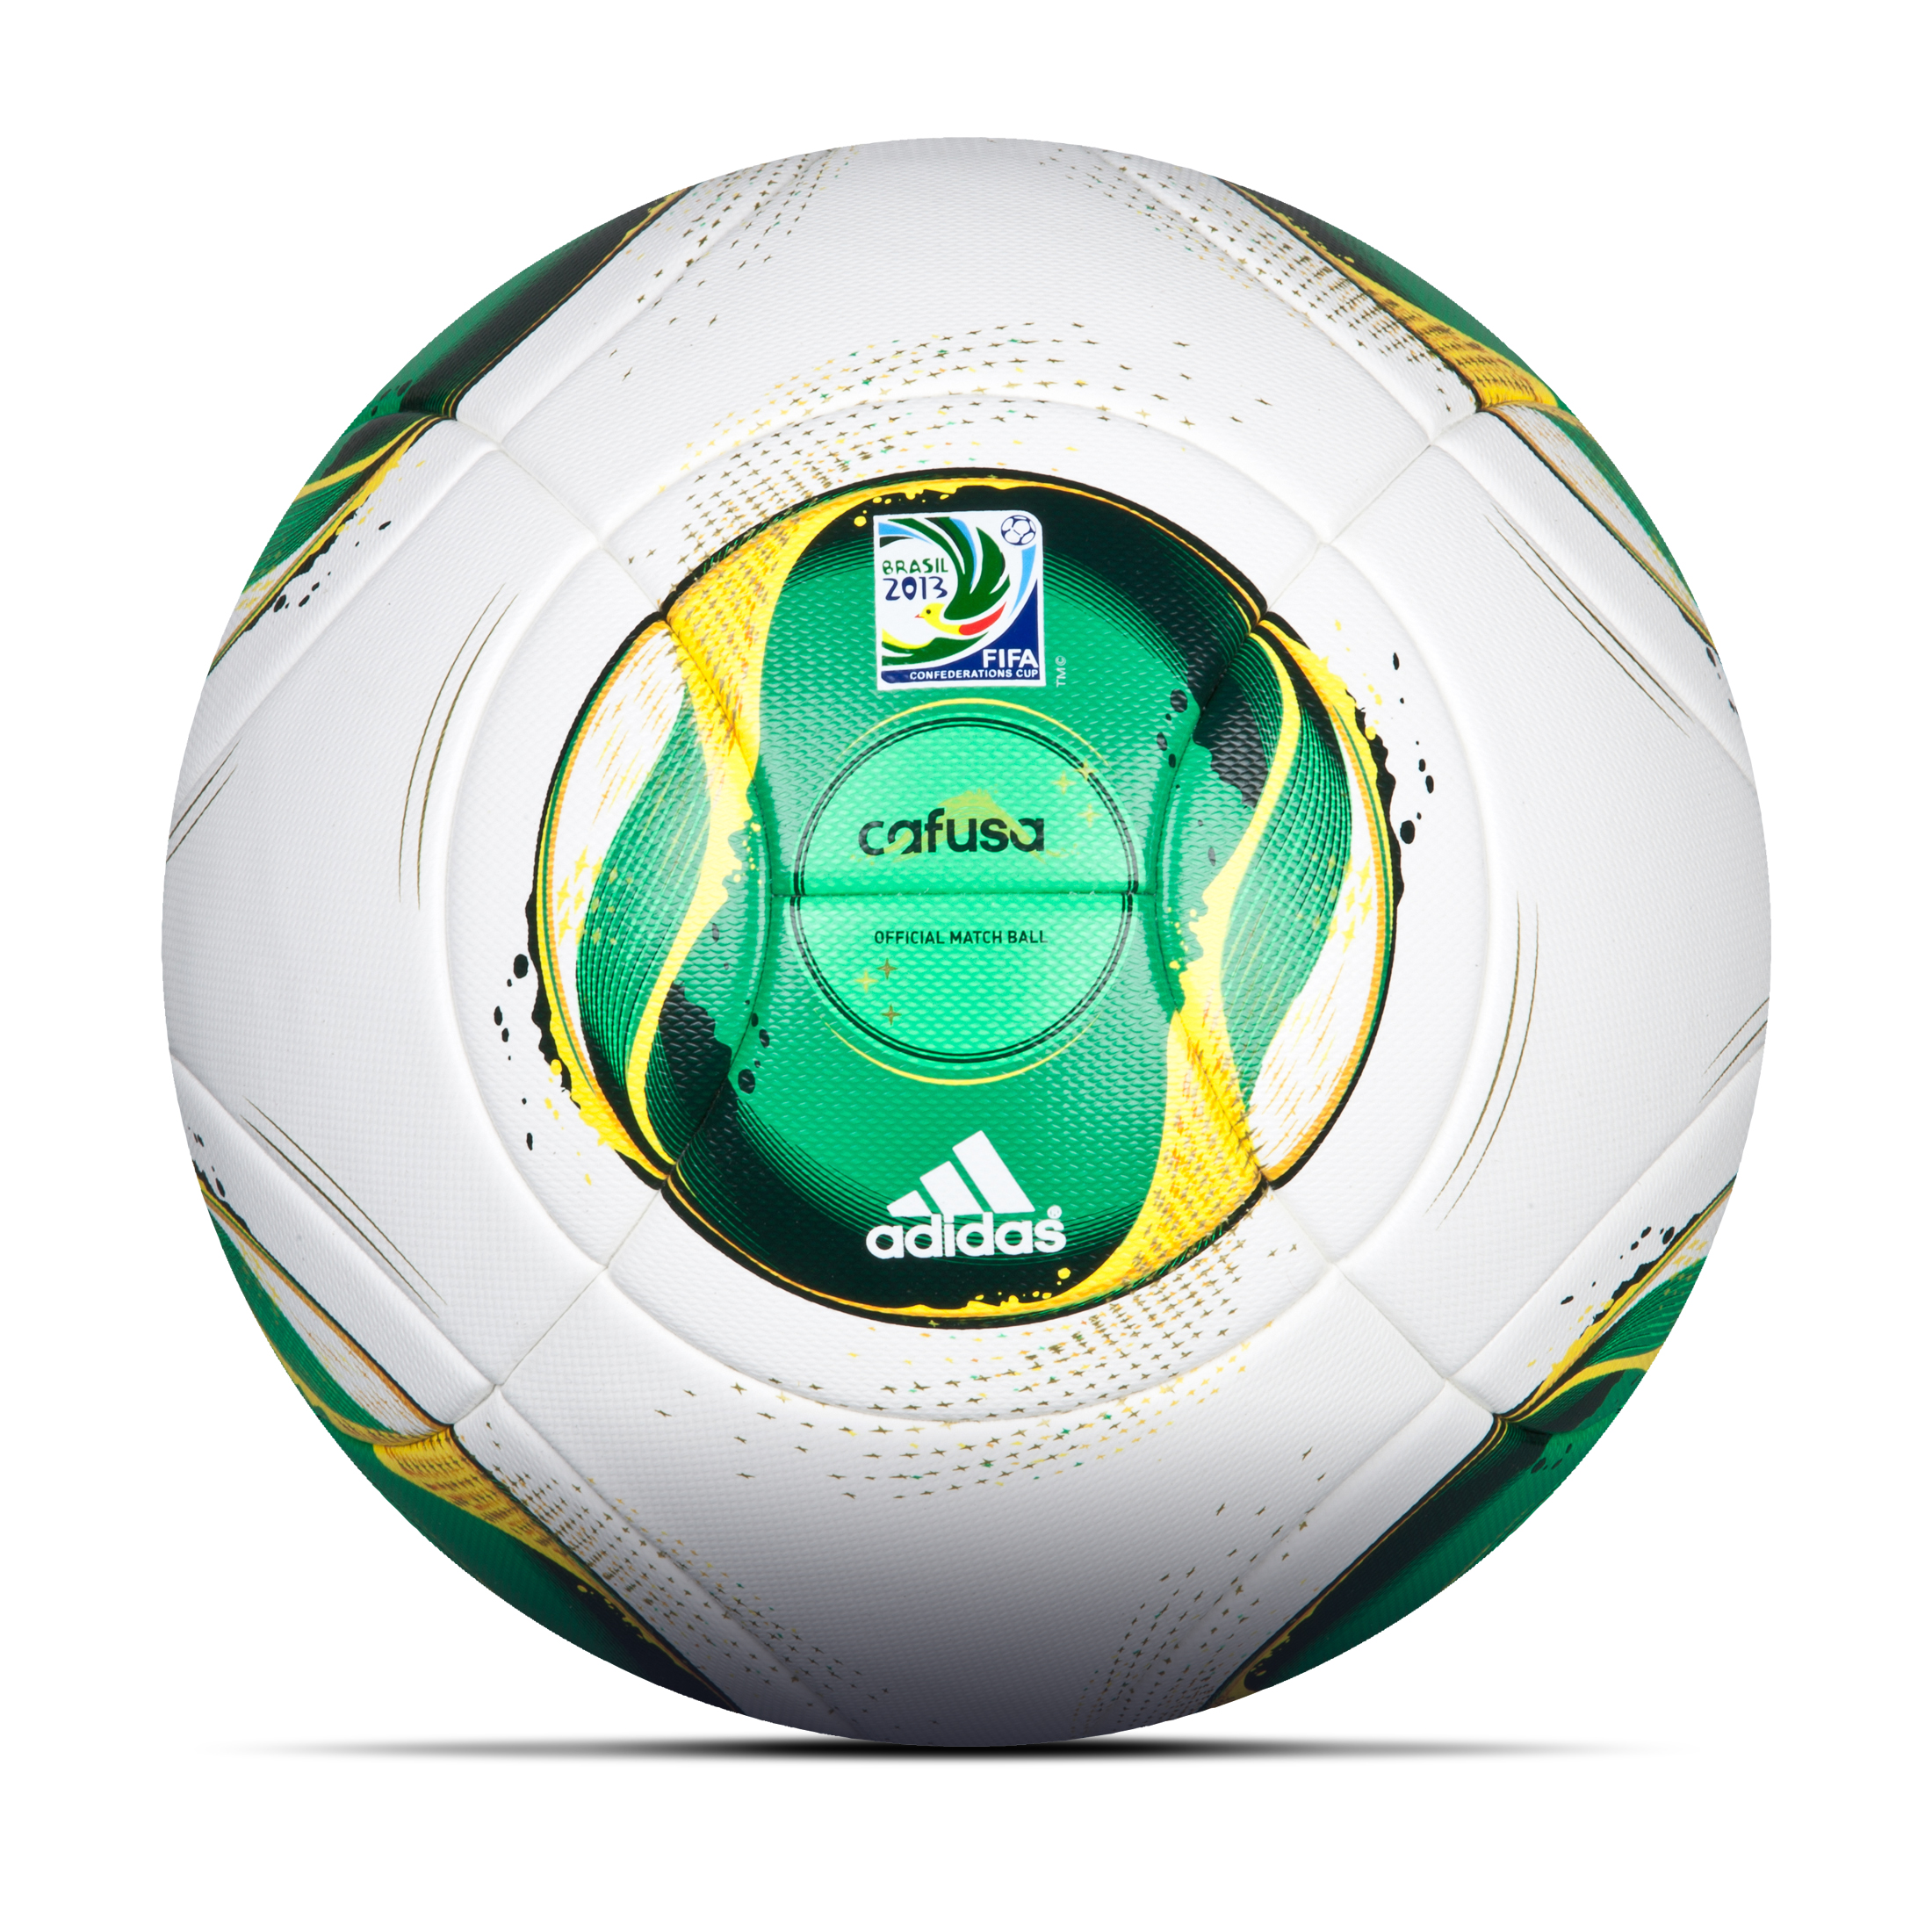 Adidas CONFED Cup Official Match Ball - White/Vivid Yellow/Vivid Green/Dark Blue